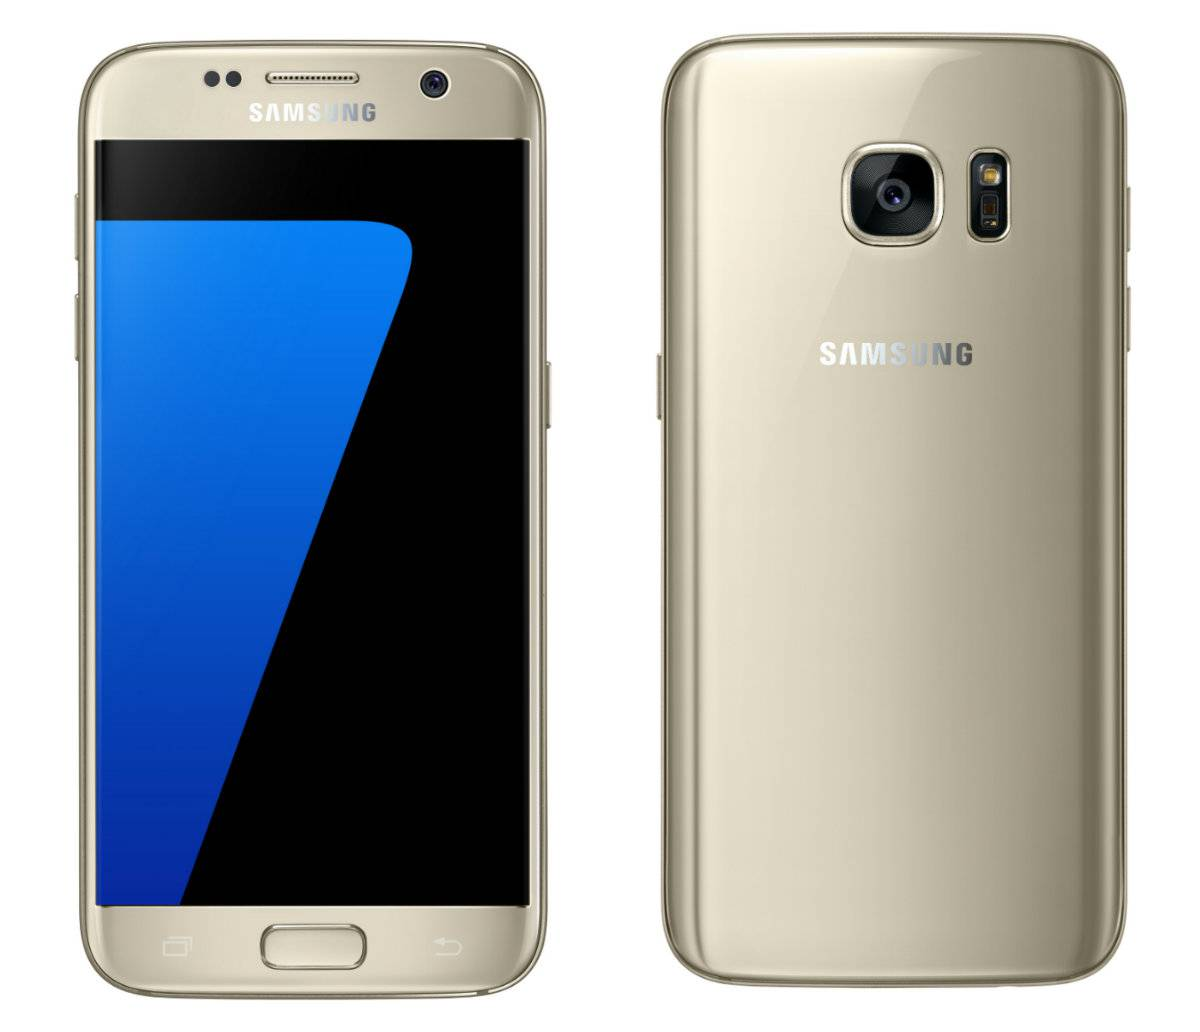 Samsung Galaxy S7 press 111